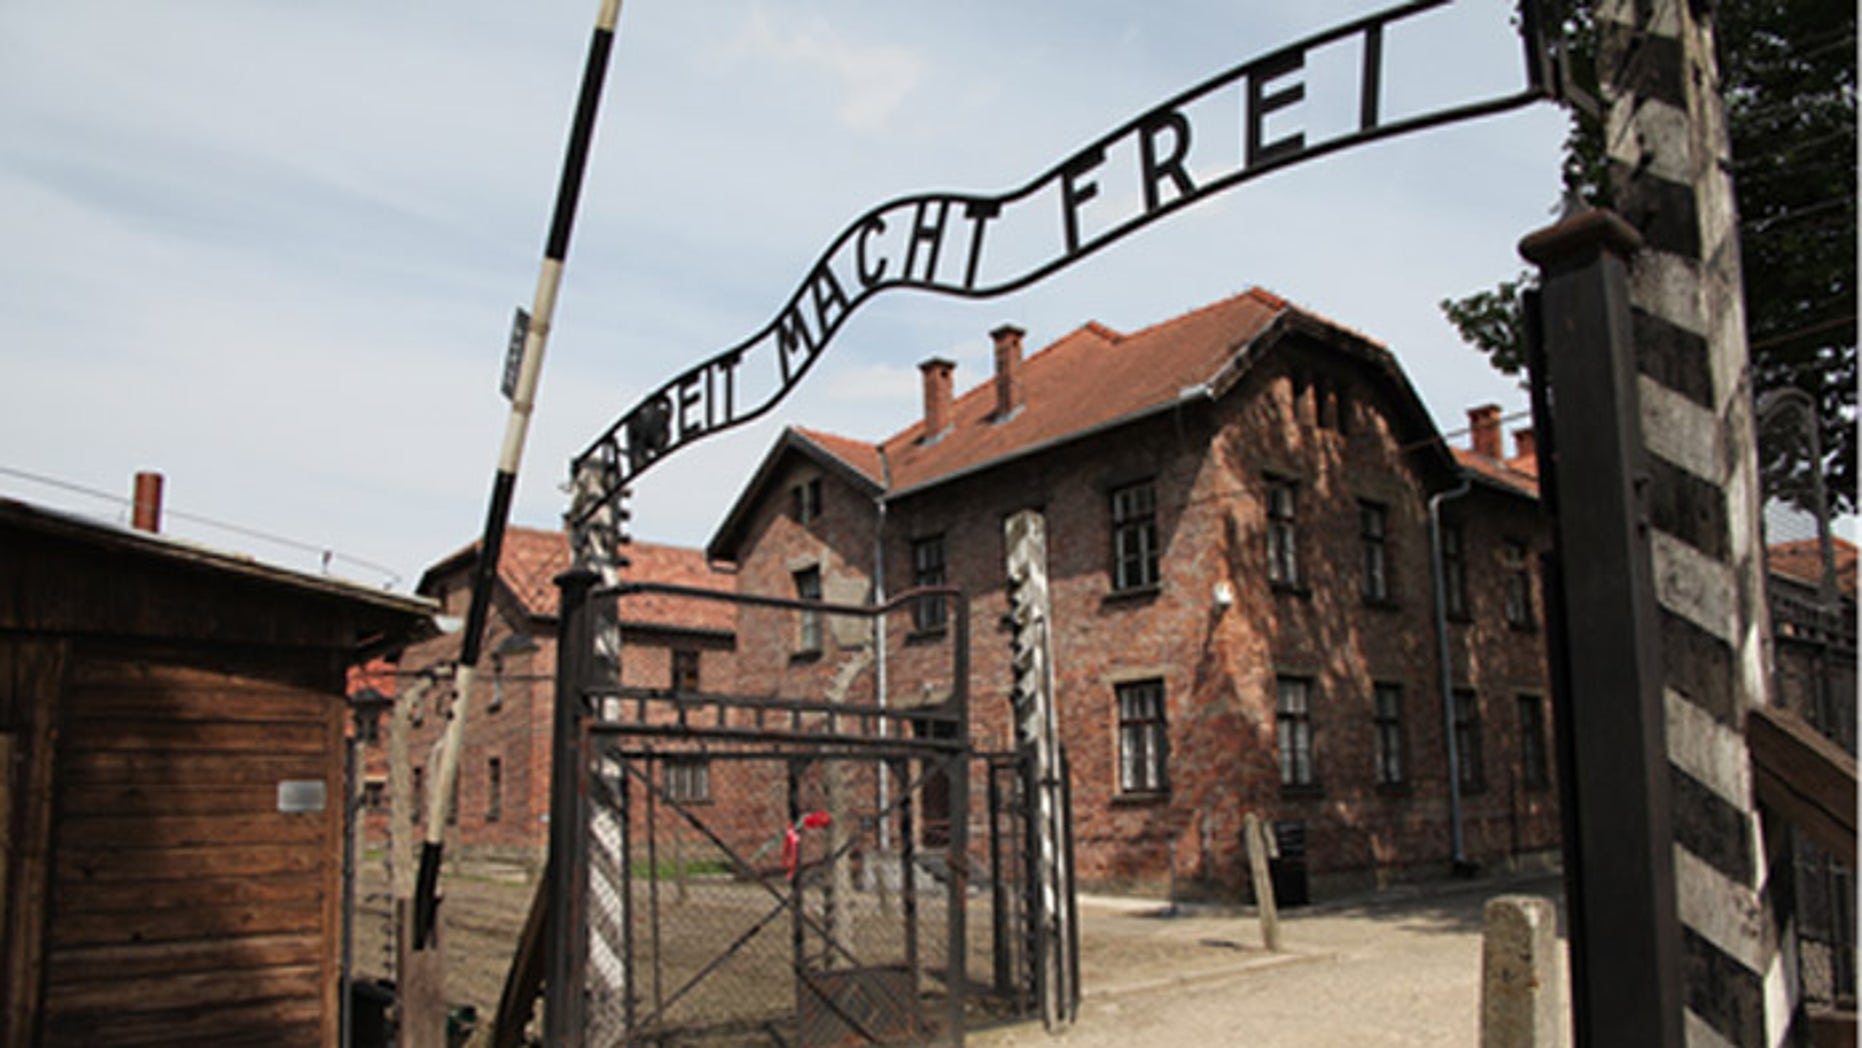 International Holocaust Remembrance Day marks the liberation of the infamous Auschwitz death camp 71 years ago.